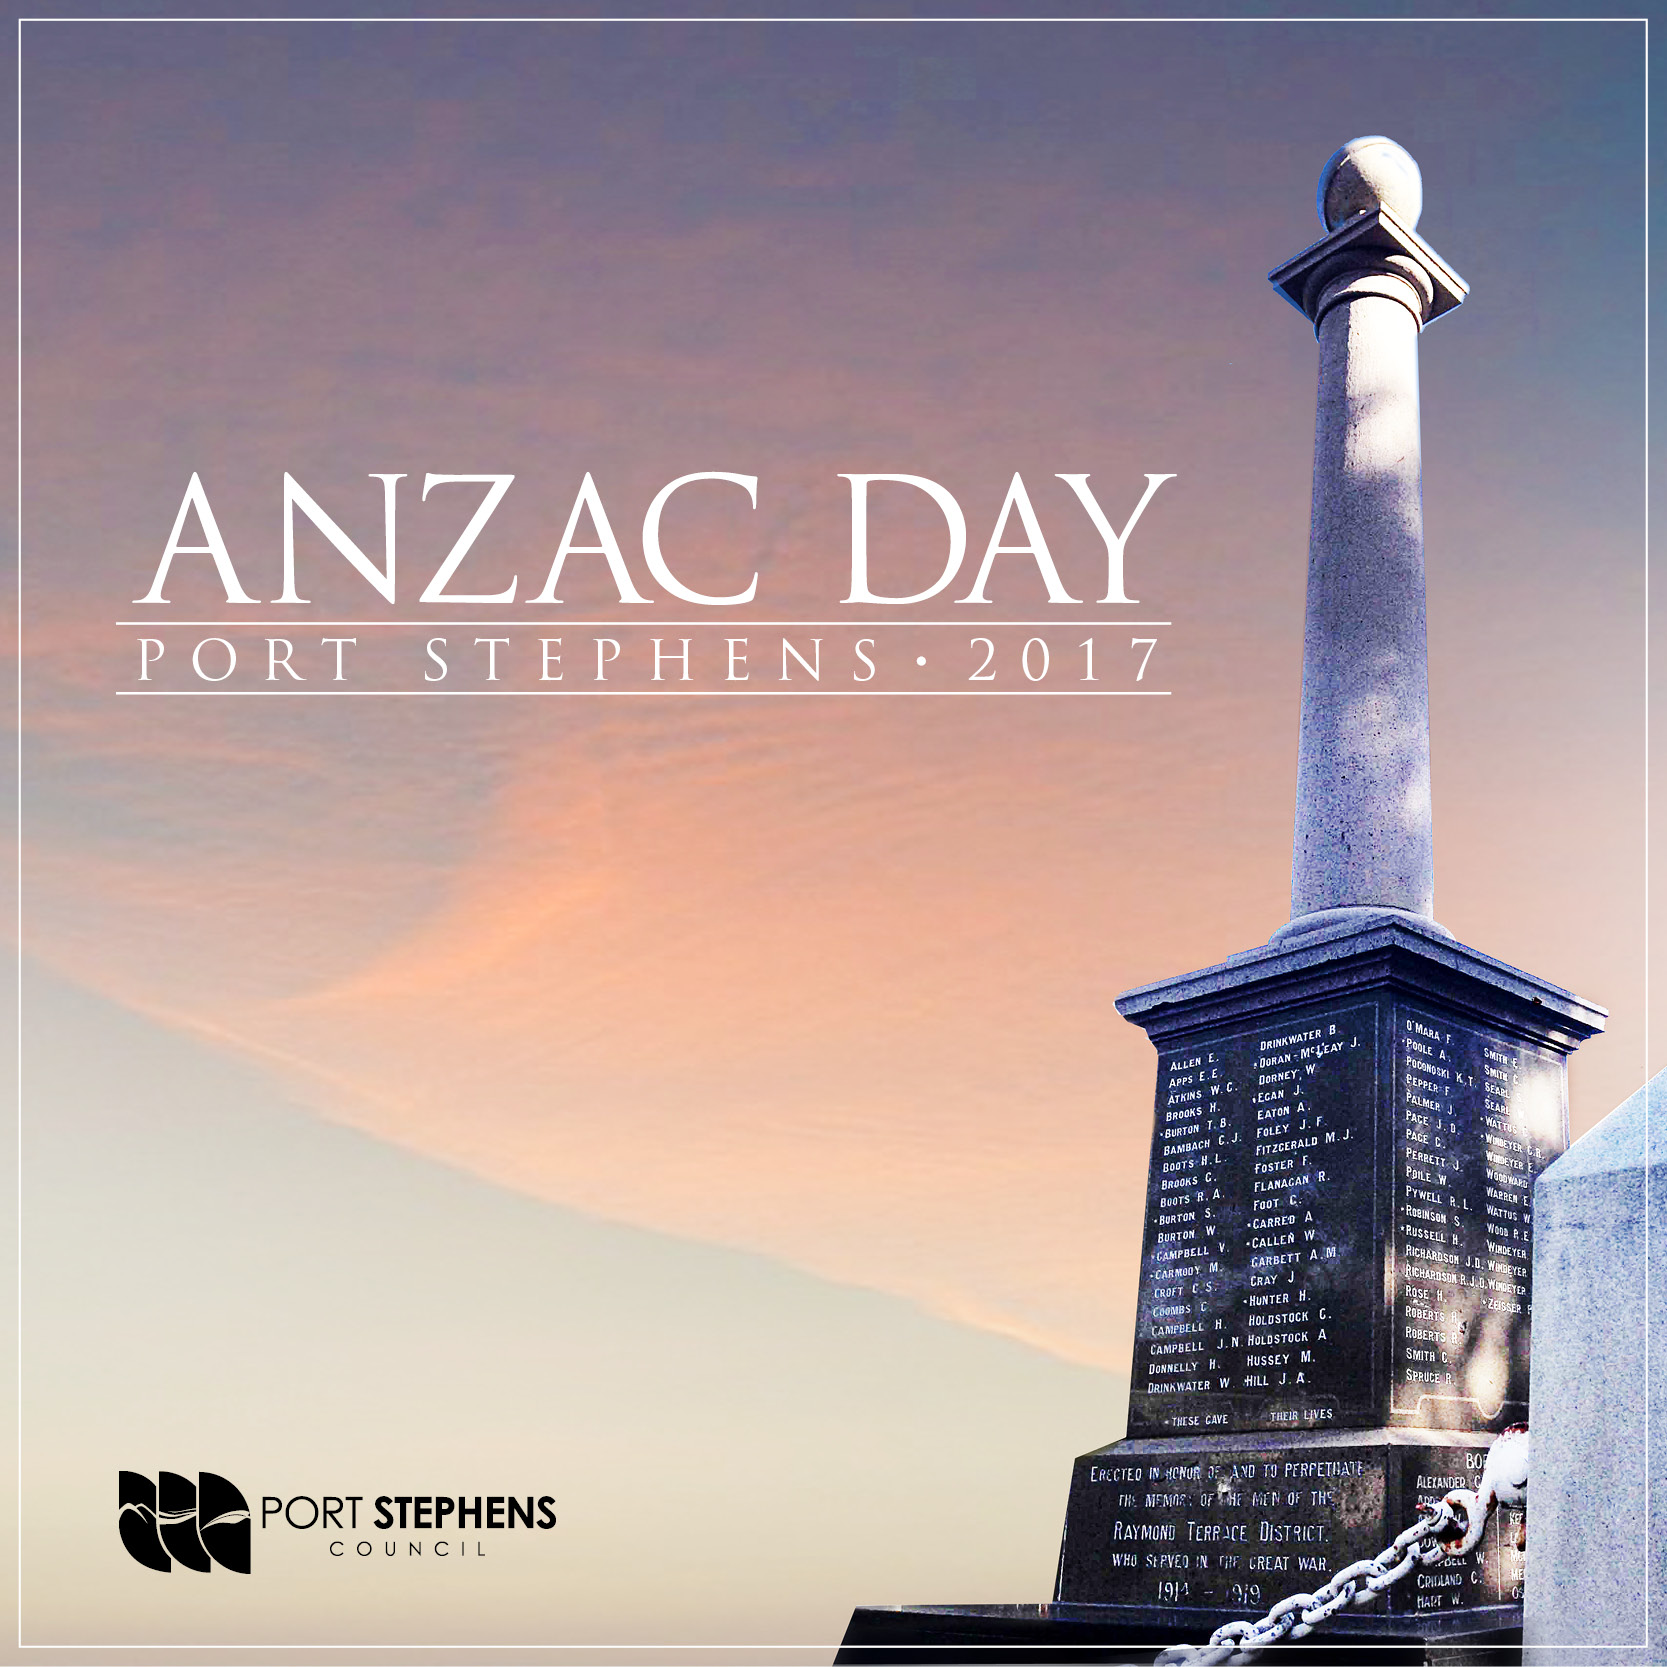 anzac day - photo #15